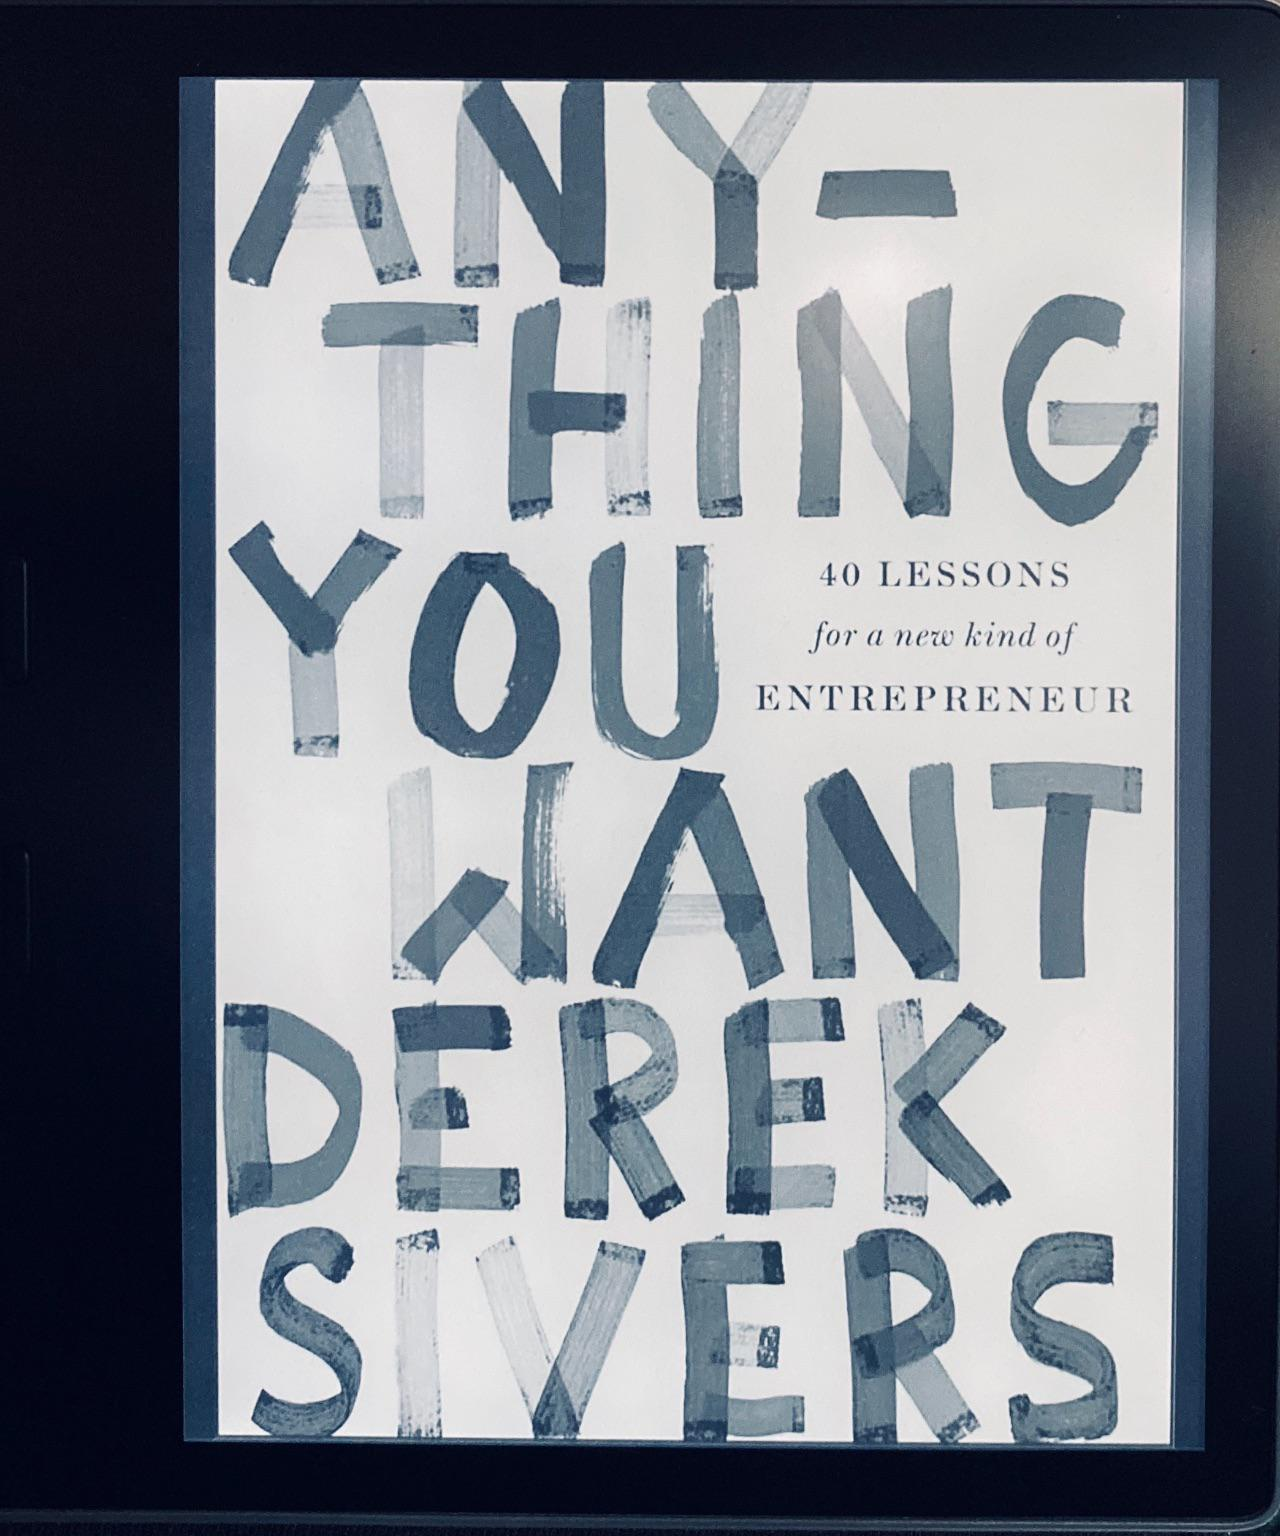 Anything you want-Derek Sivers